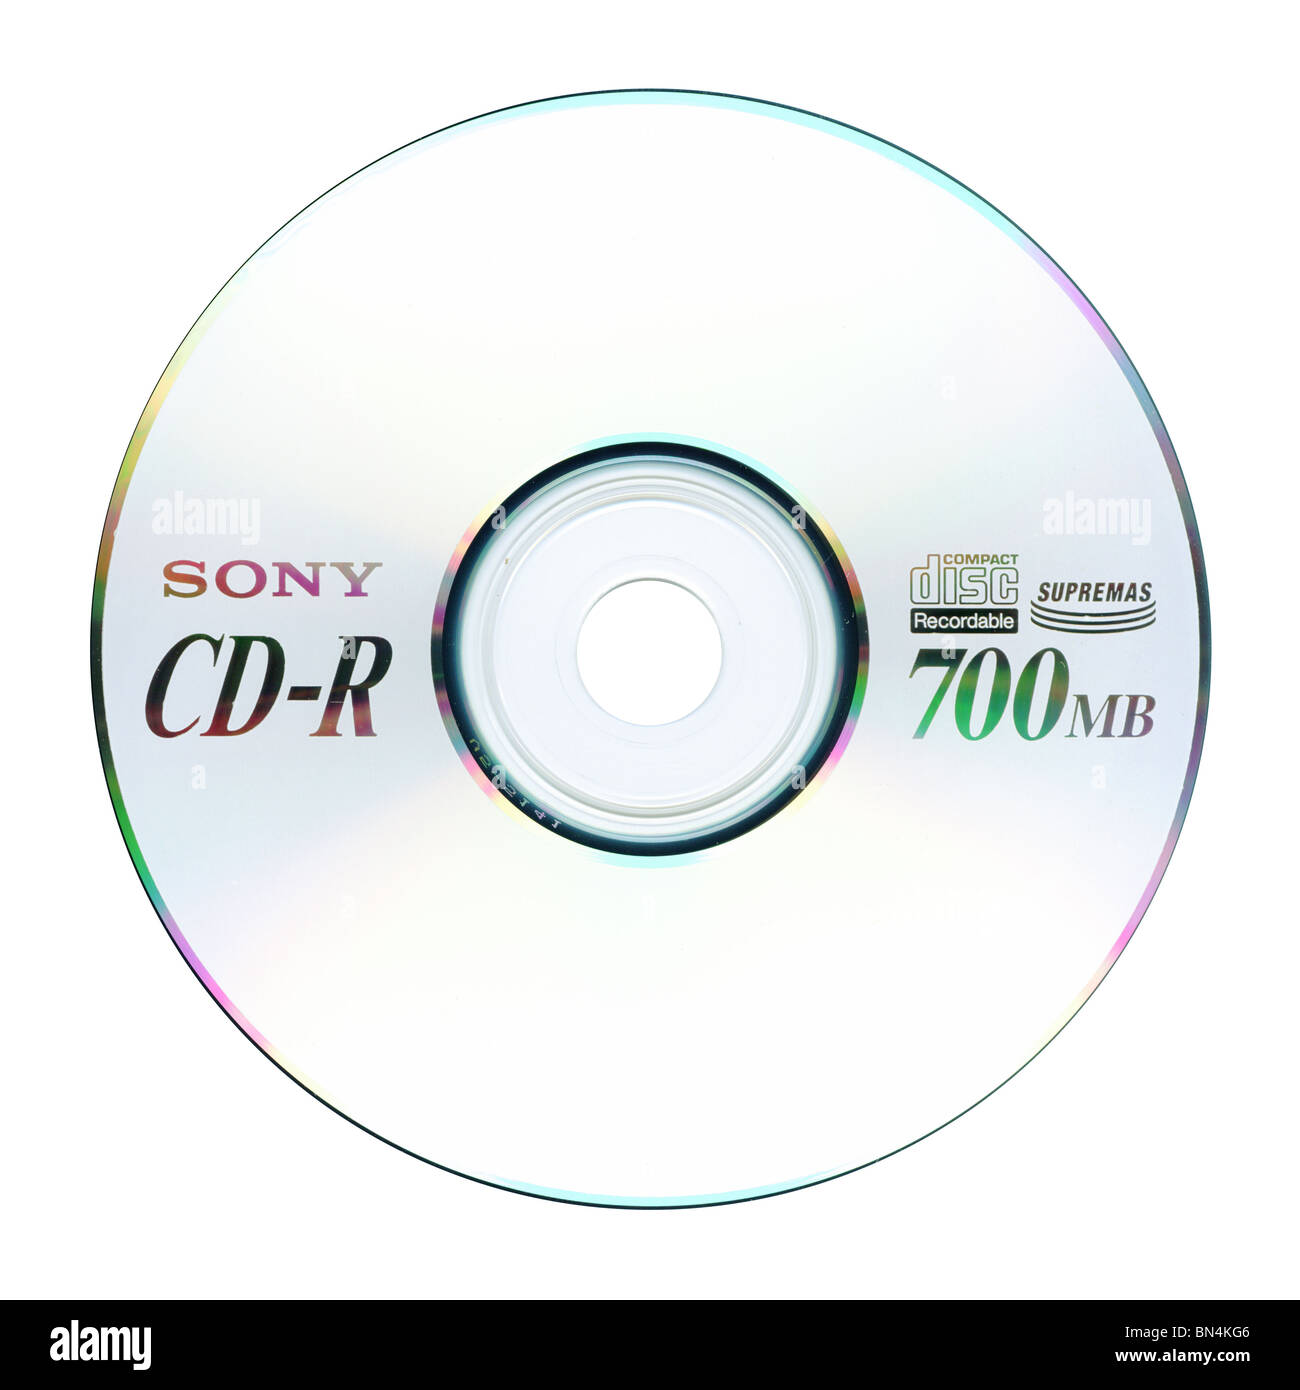 Sony CD-R compact disc 700MB - Stock Image